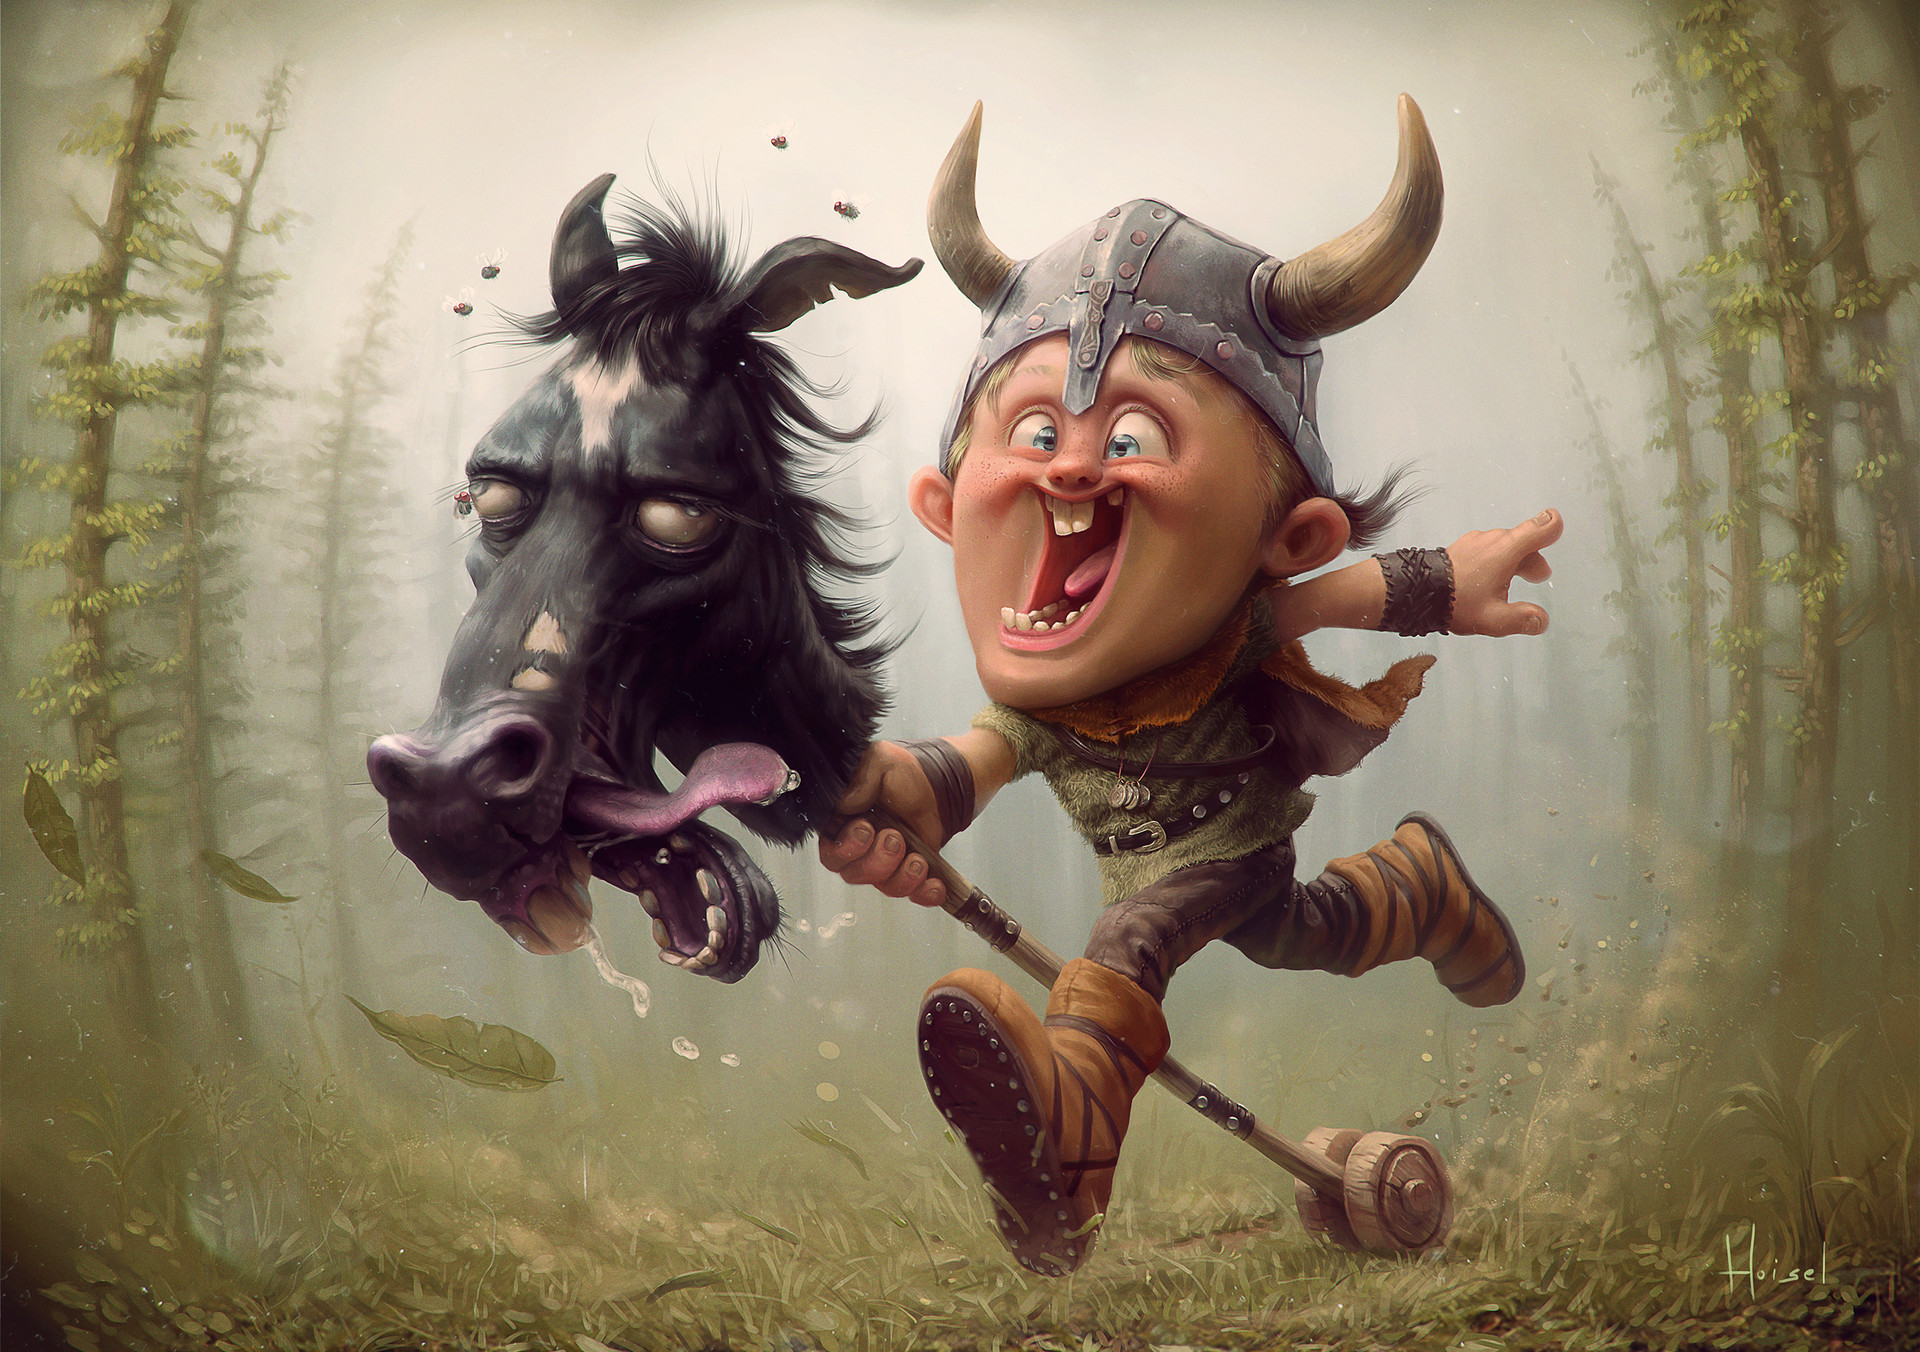 tiago-hoisel-viking